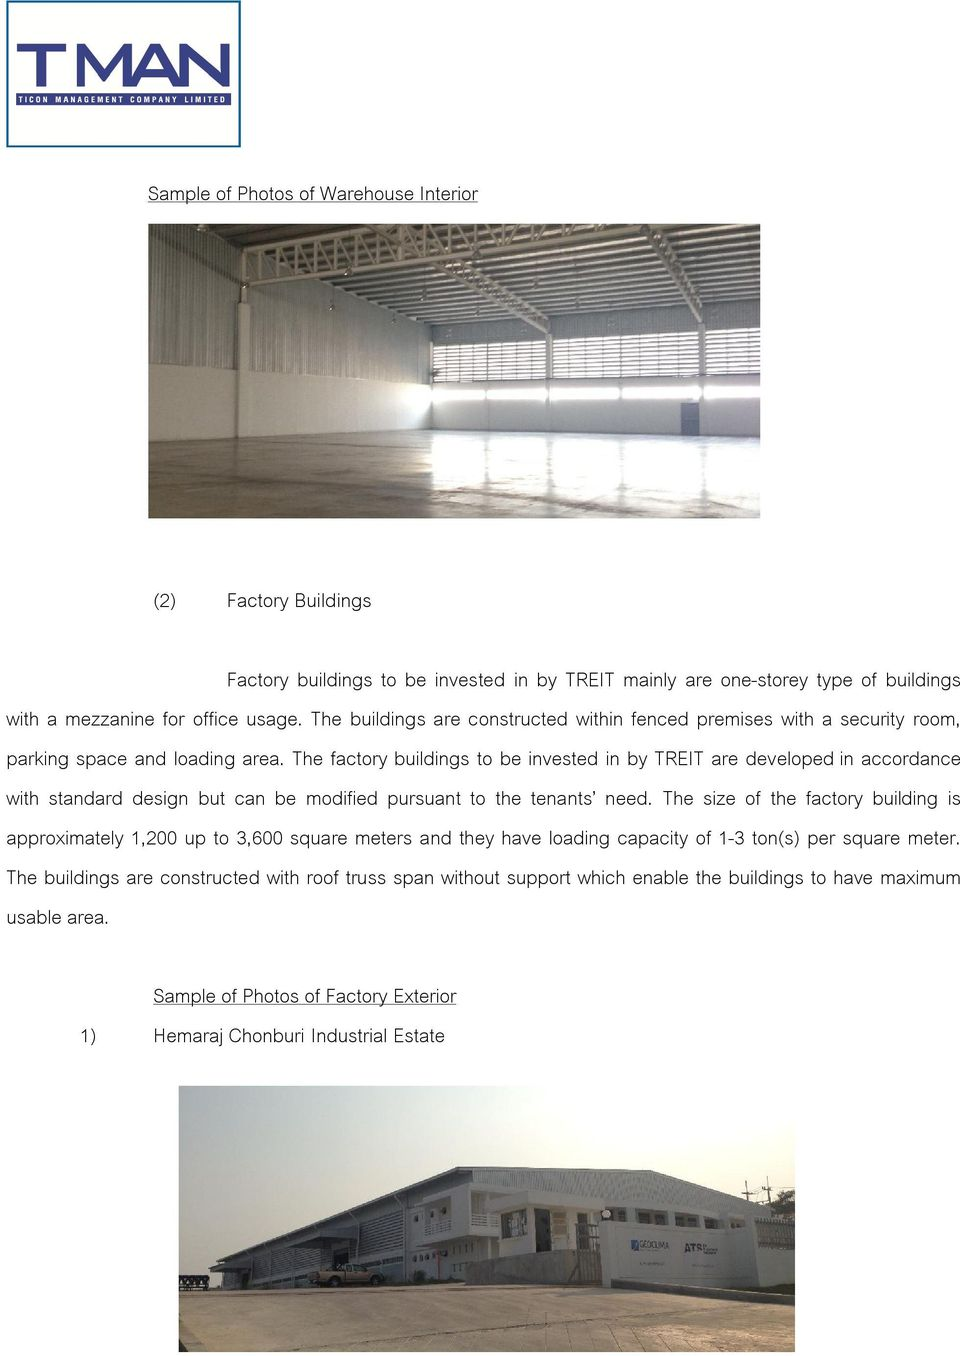 The factory buildings to be invested in by TREIT are developed in accordance with standard design but can be modified pursuant to the tenants need.